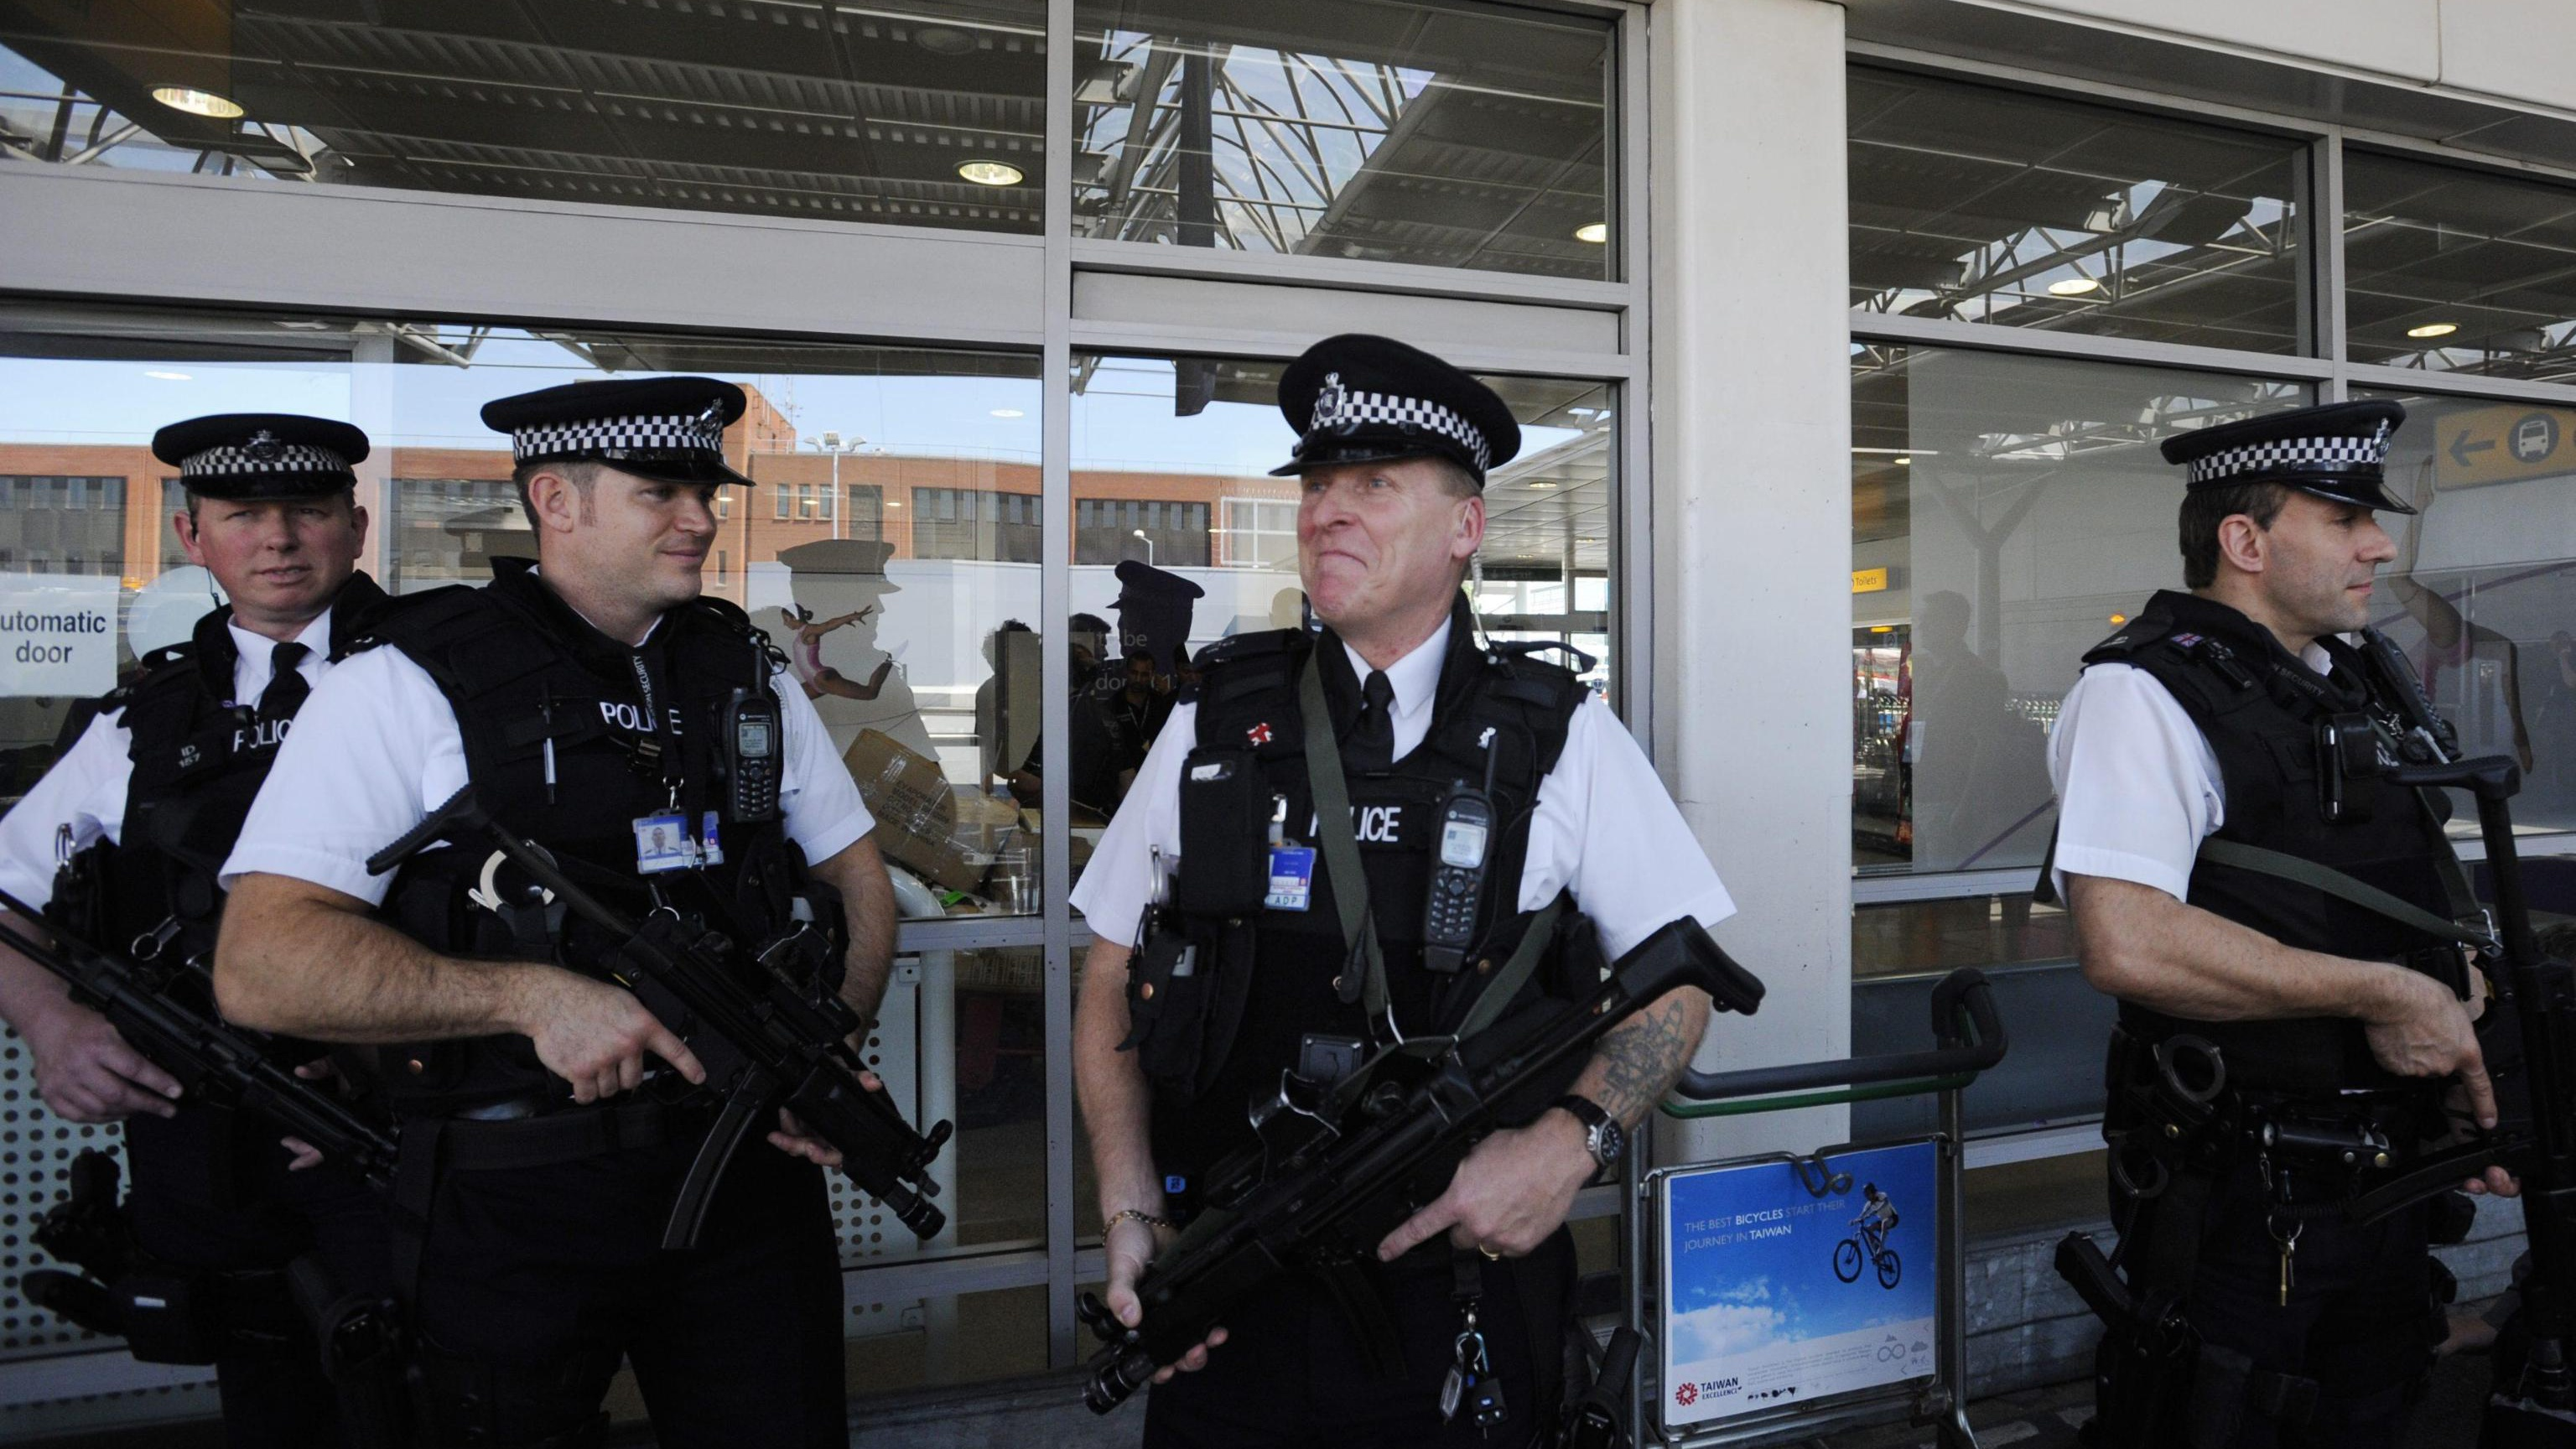 Arrestata a Heathrow, preparava attacchi